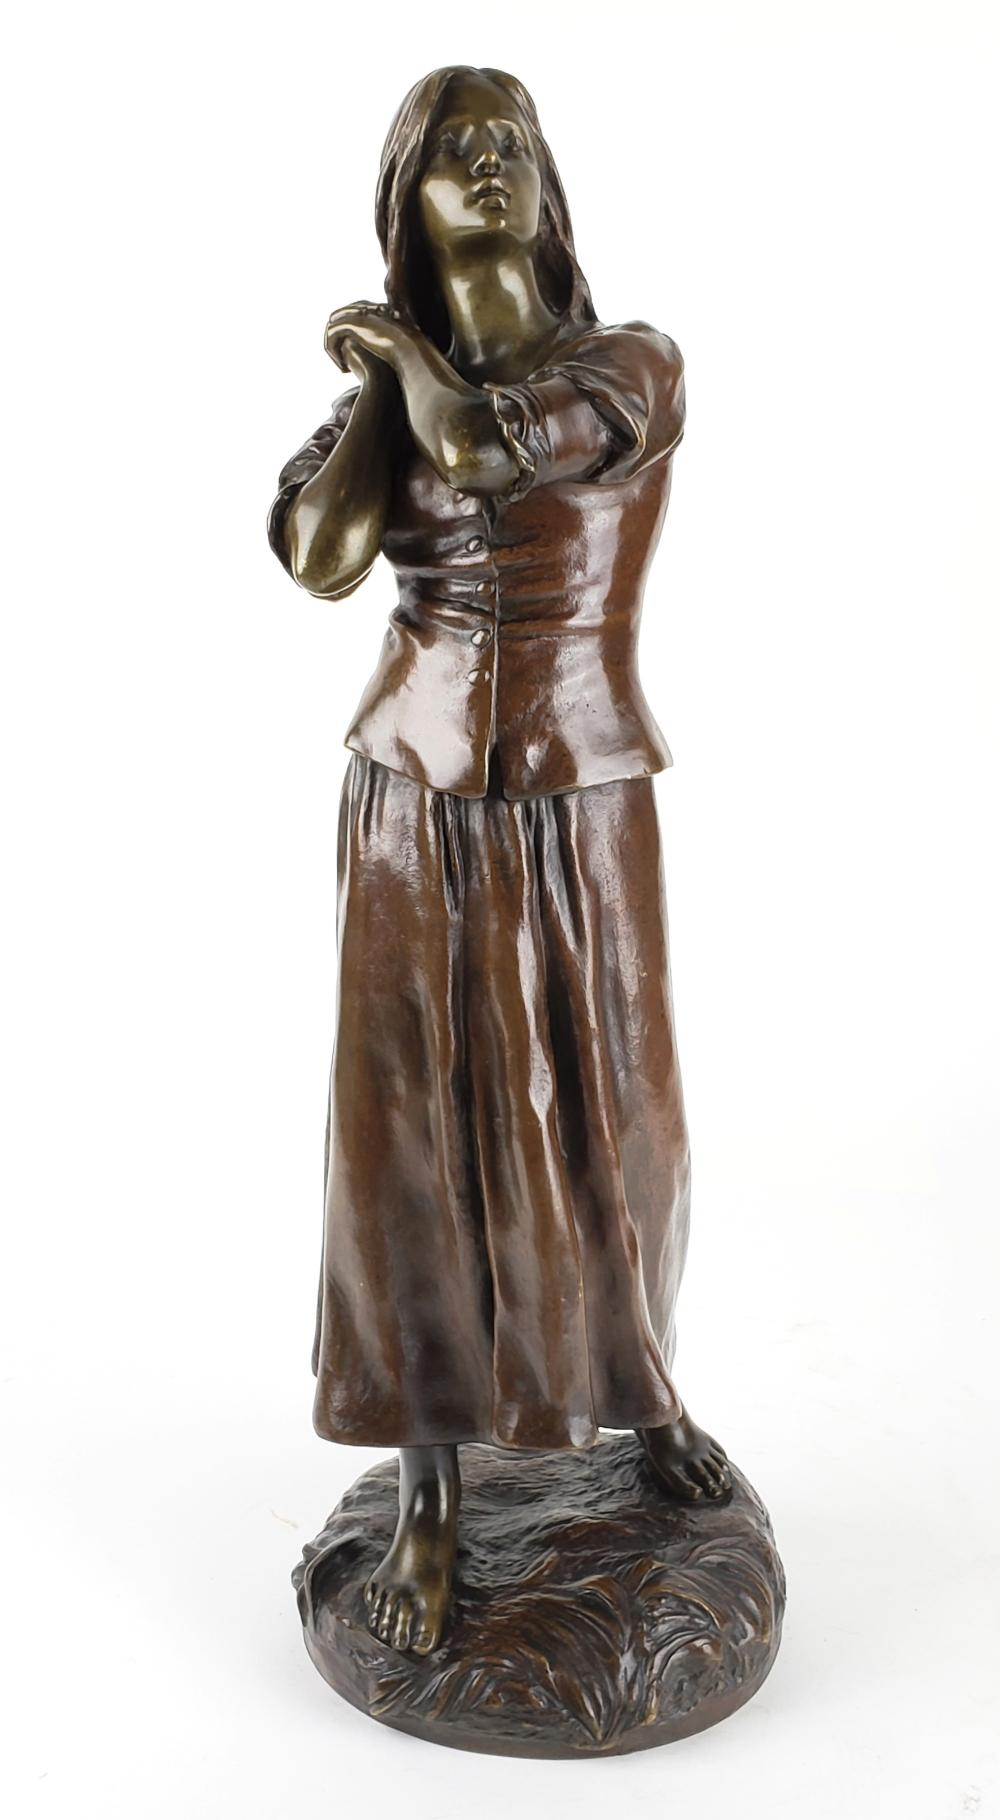 19th C. Bronze Figure of Jeanne D'Arc by Raoul Larche, Signed